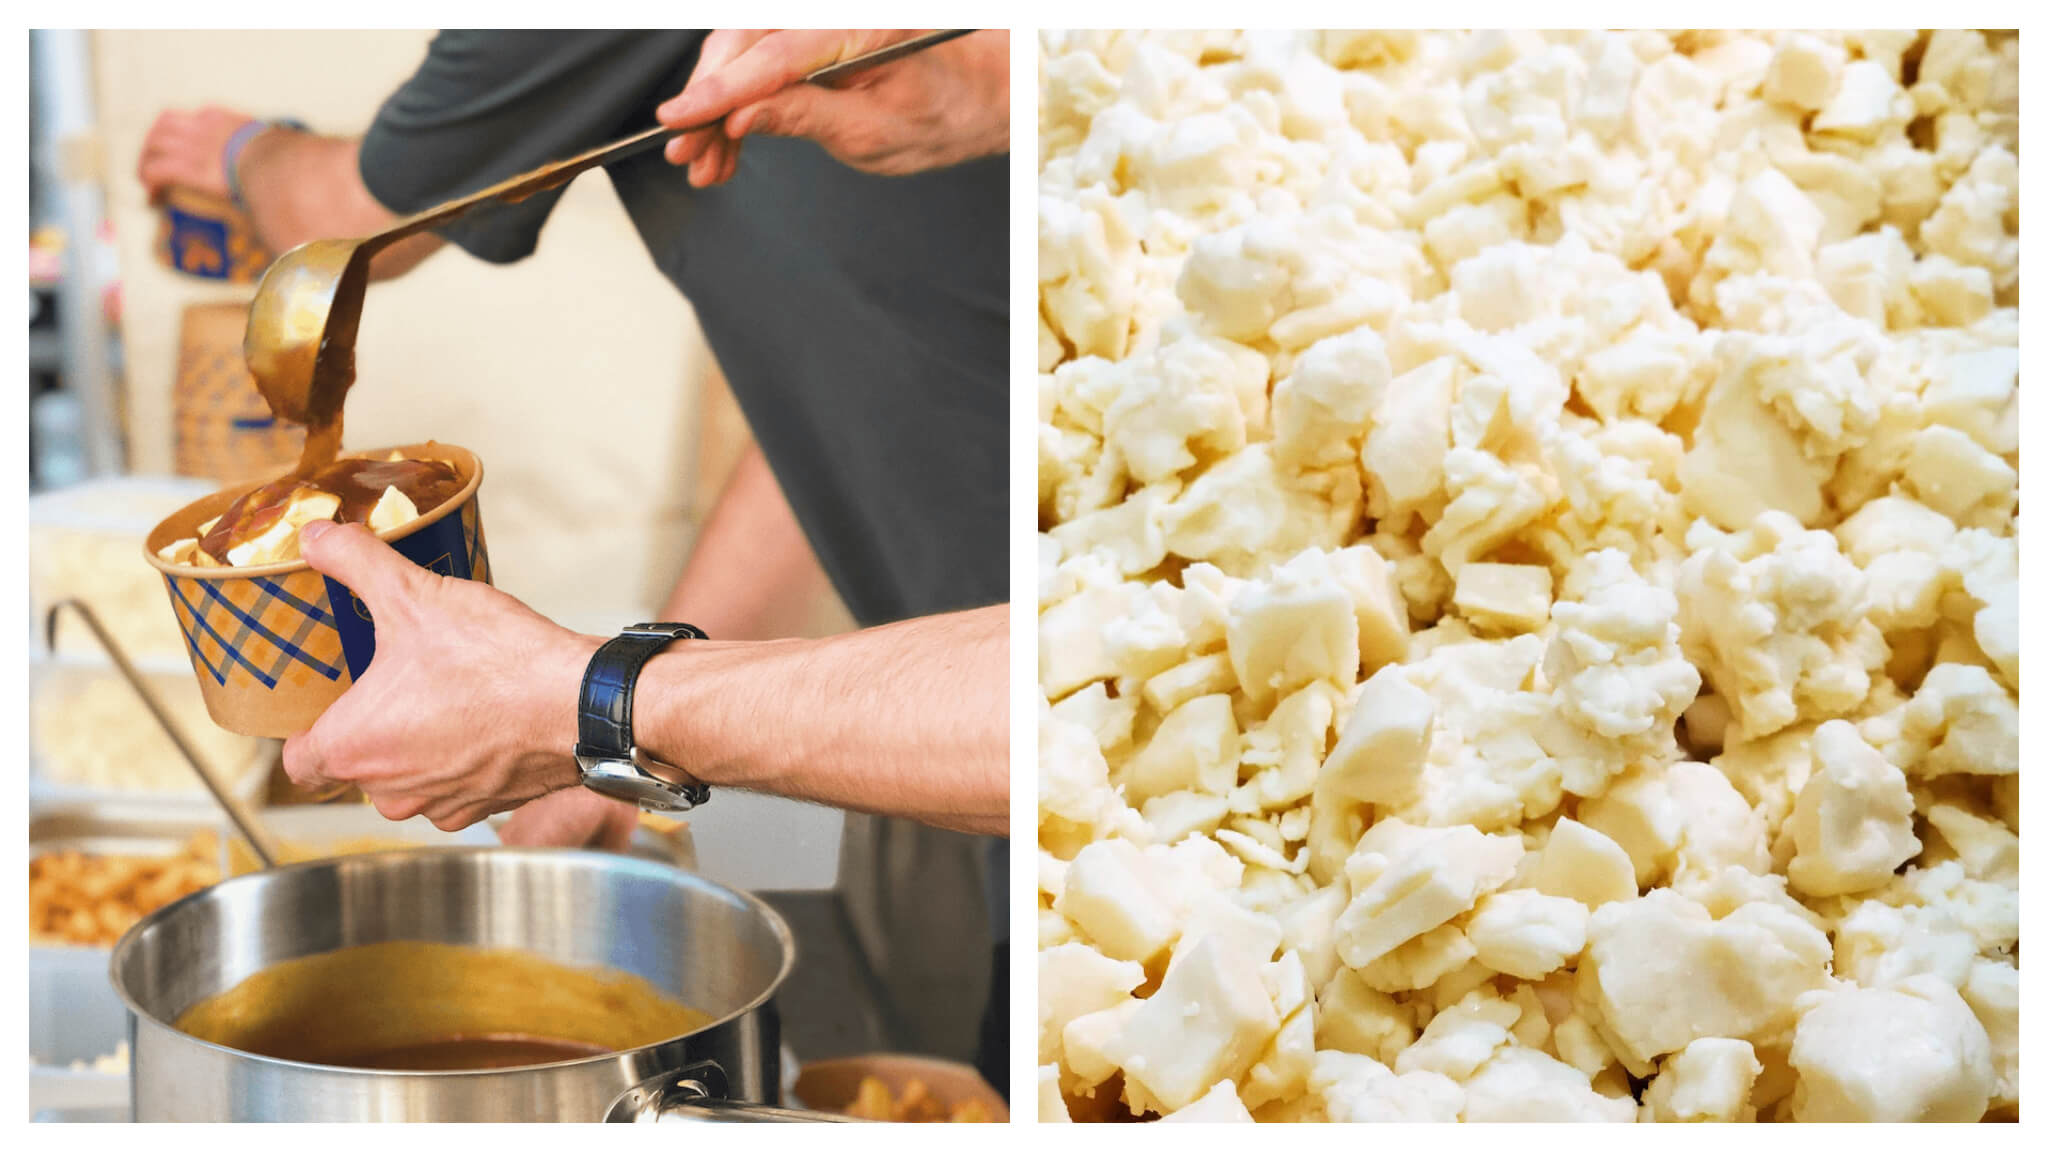 On left, poutine being poured in a paper bowl. On right, crumbly cheese. Both photographs courtesy of Maison de la Poutine, found in Paris' 2nd and 11th arrondissements.